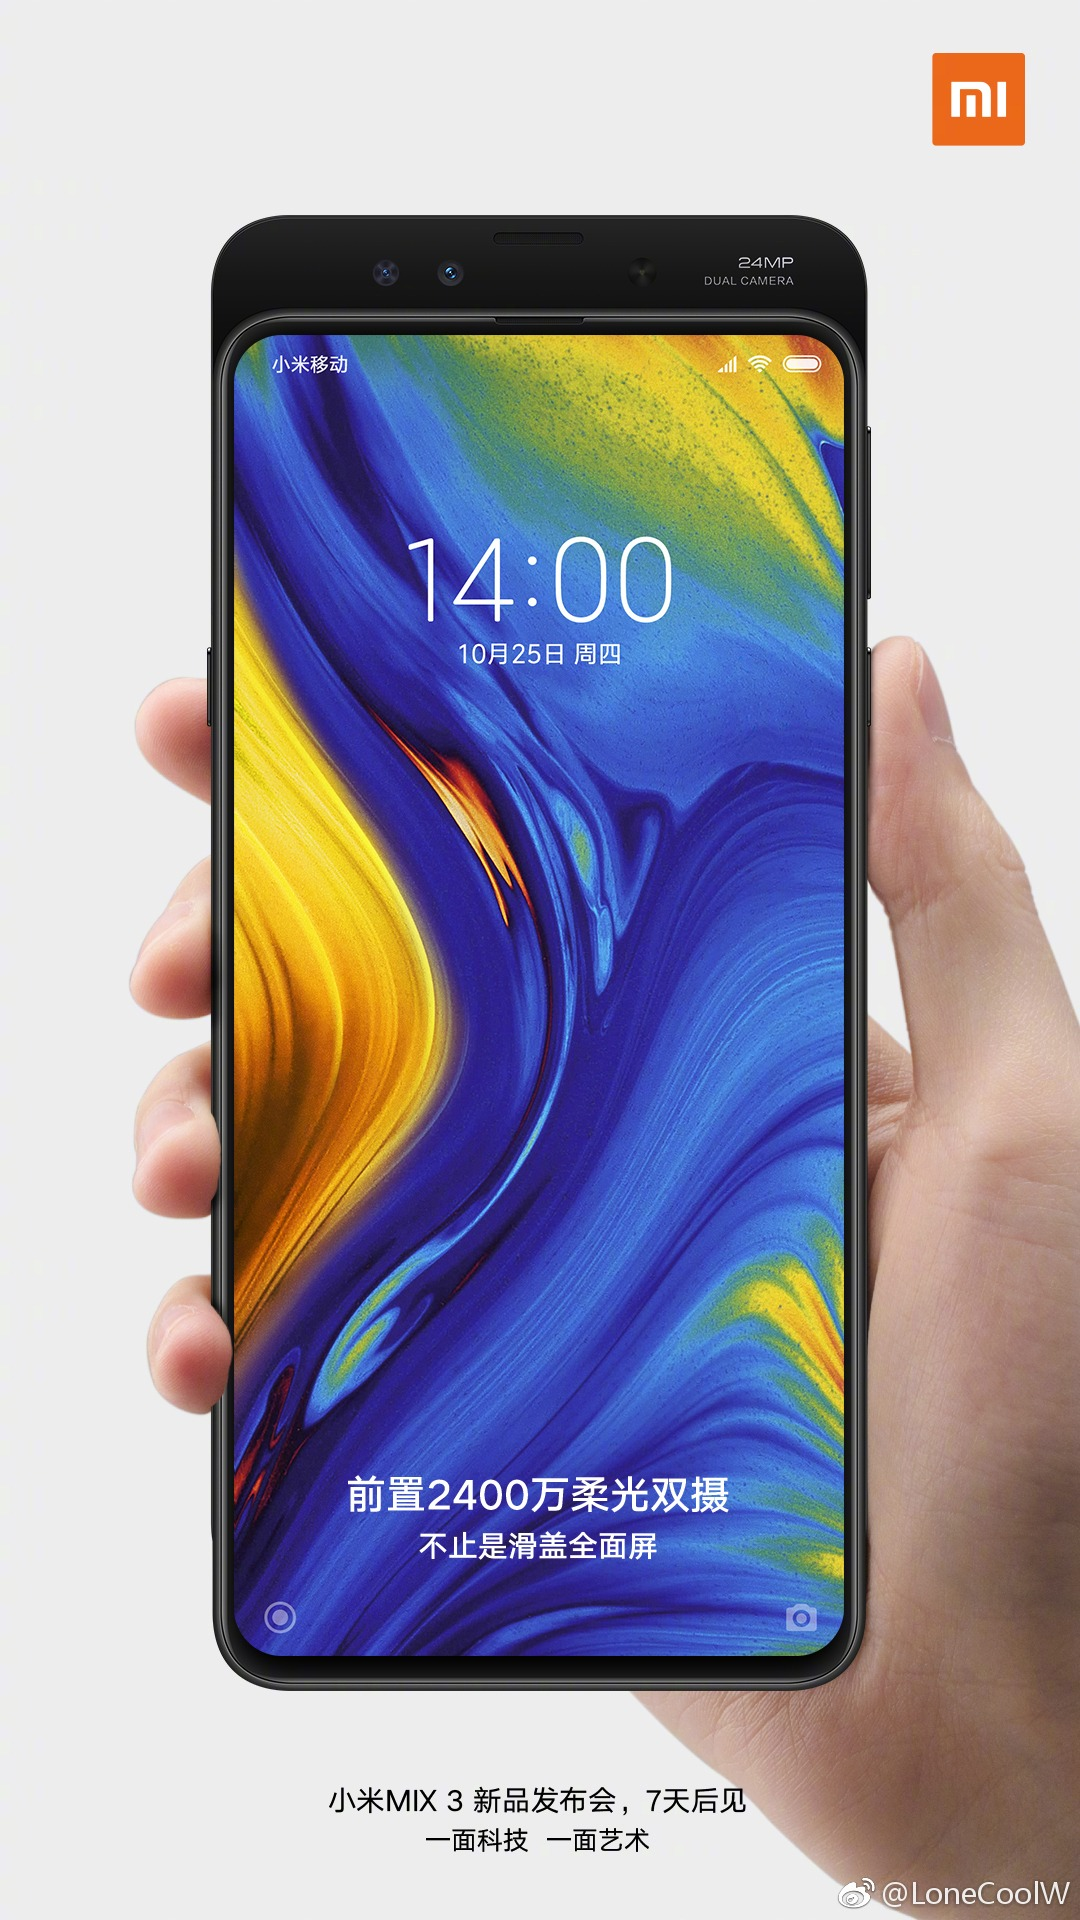 Leak reveals rear-facing fingerprint scanner on Xiaomi Mi Mix 3 2